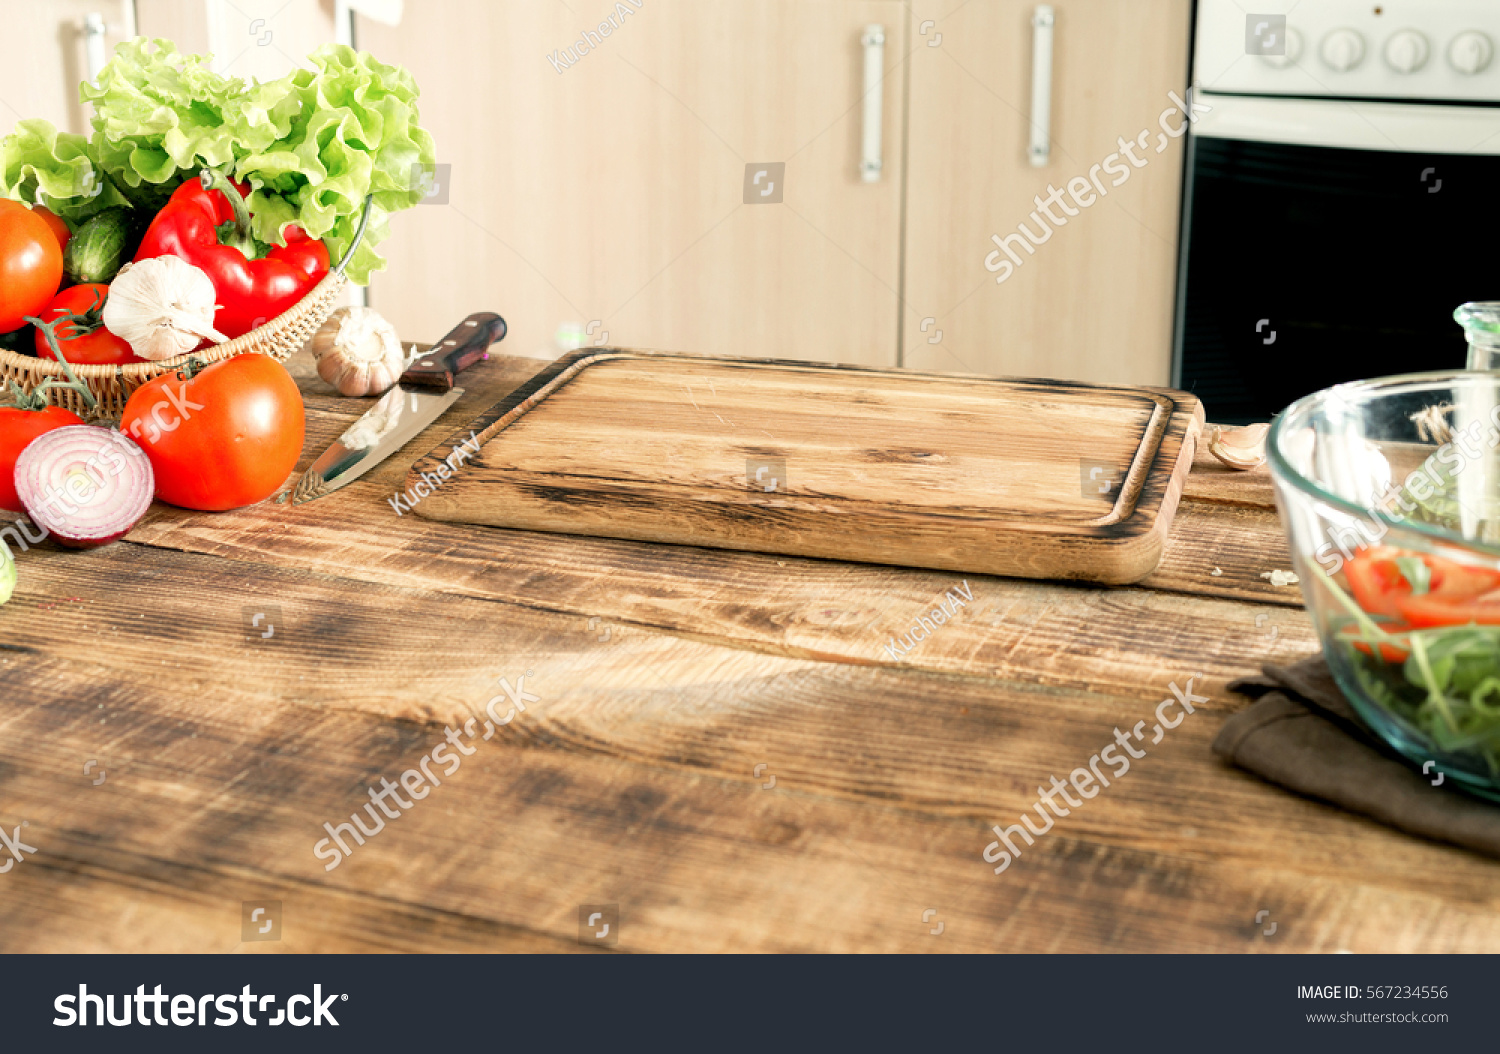 Kitchen Table Ingredients Cooking Healthy Food Stock Photo